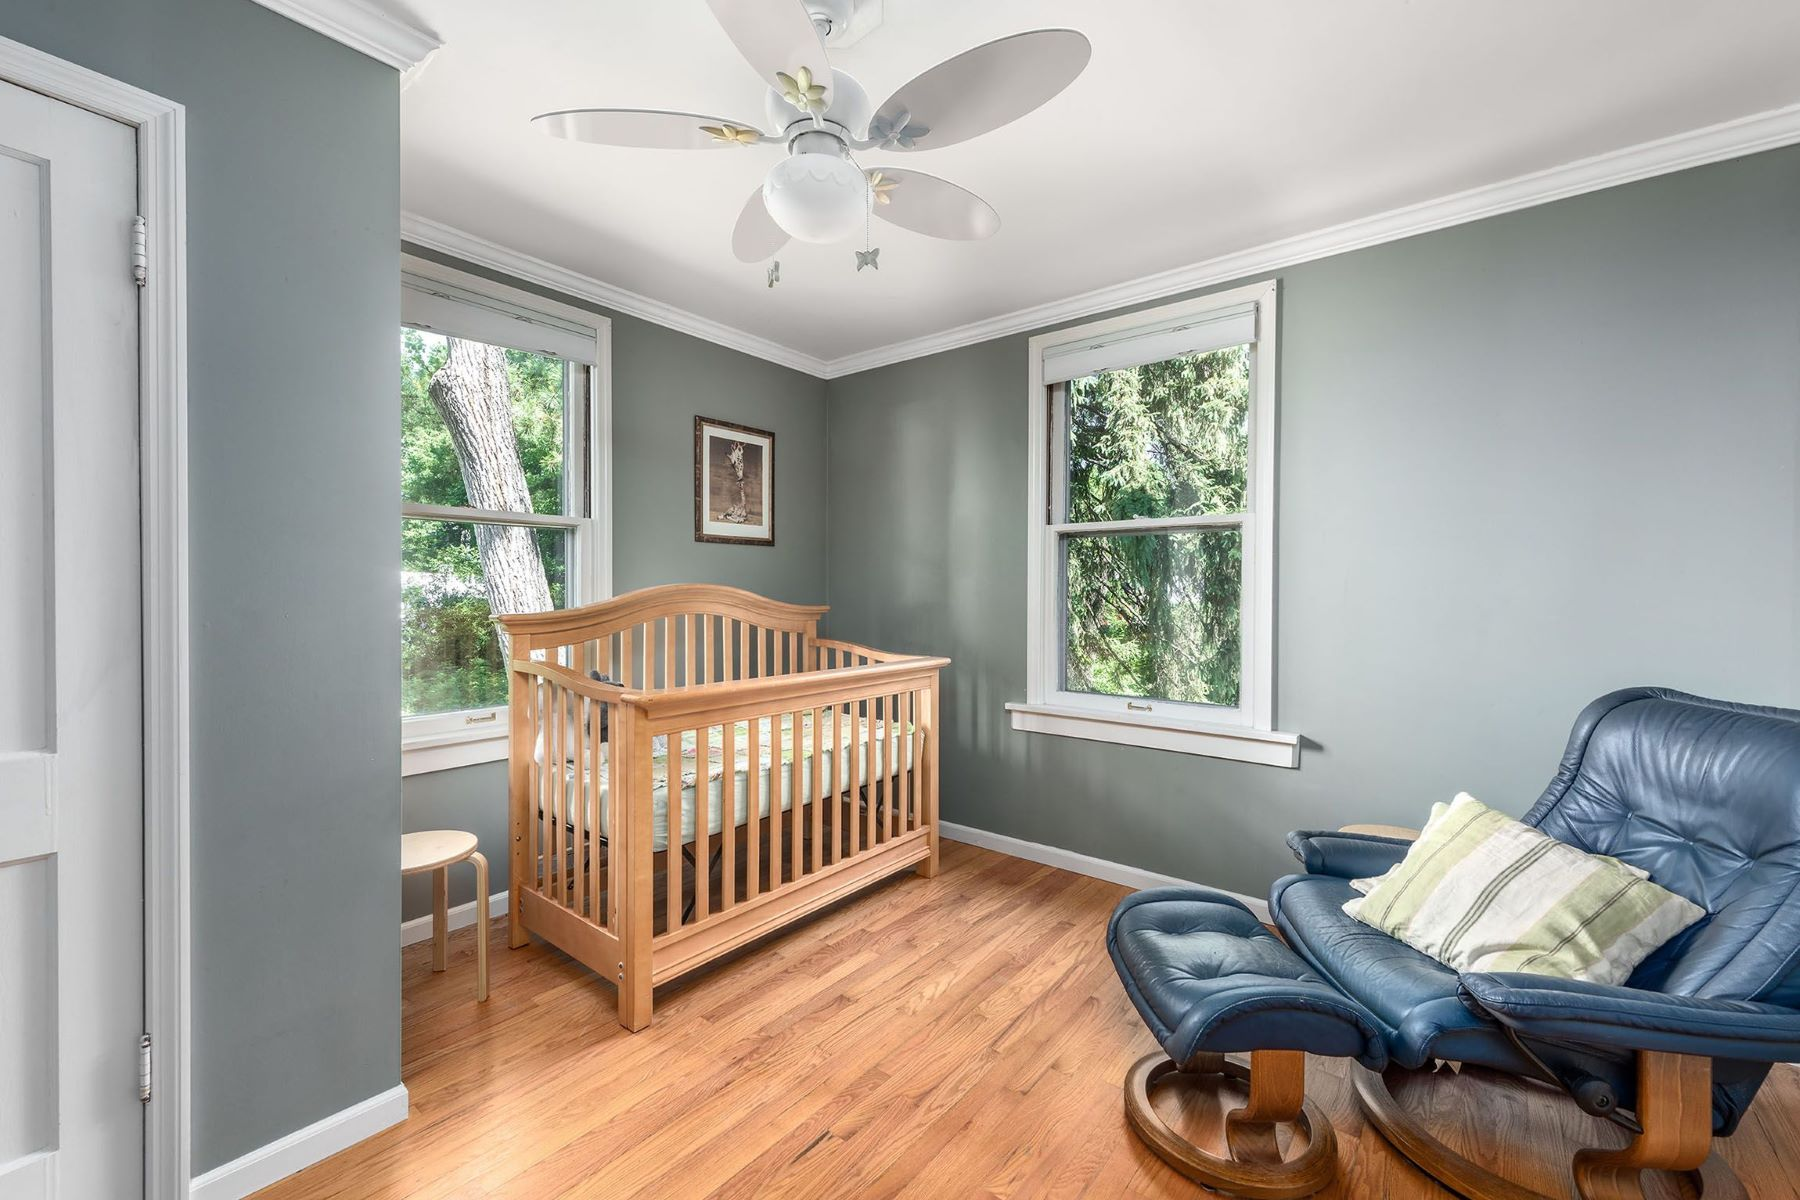 Additional photo for property listing at Enchanting Webster Groves Home 225 Simmons Avenue Webster Groves, Missouri 63119 United States